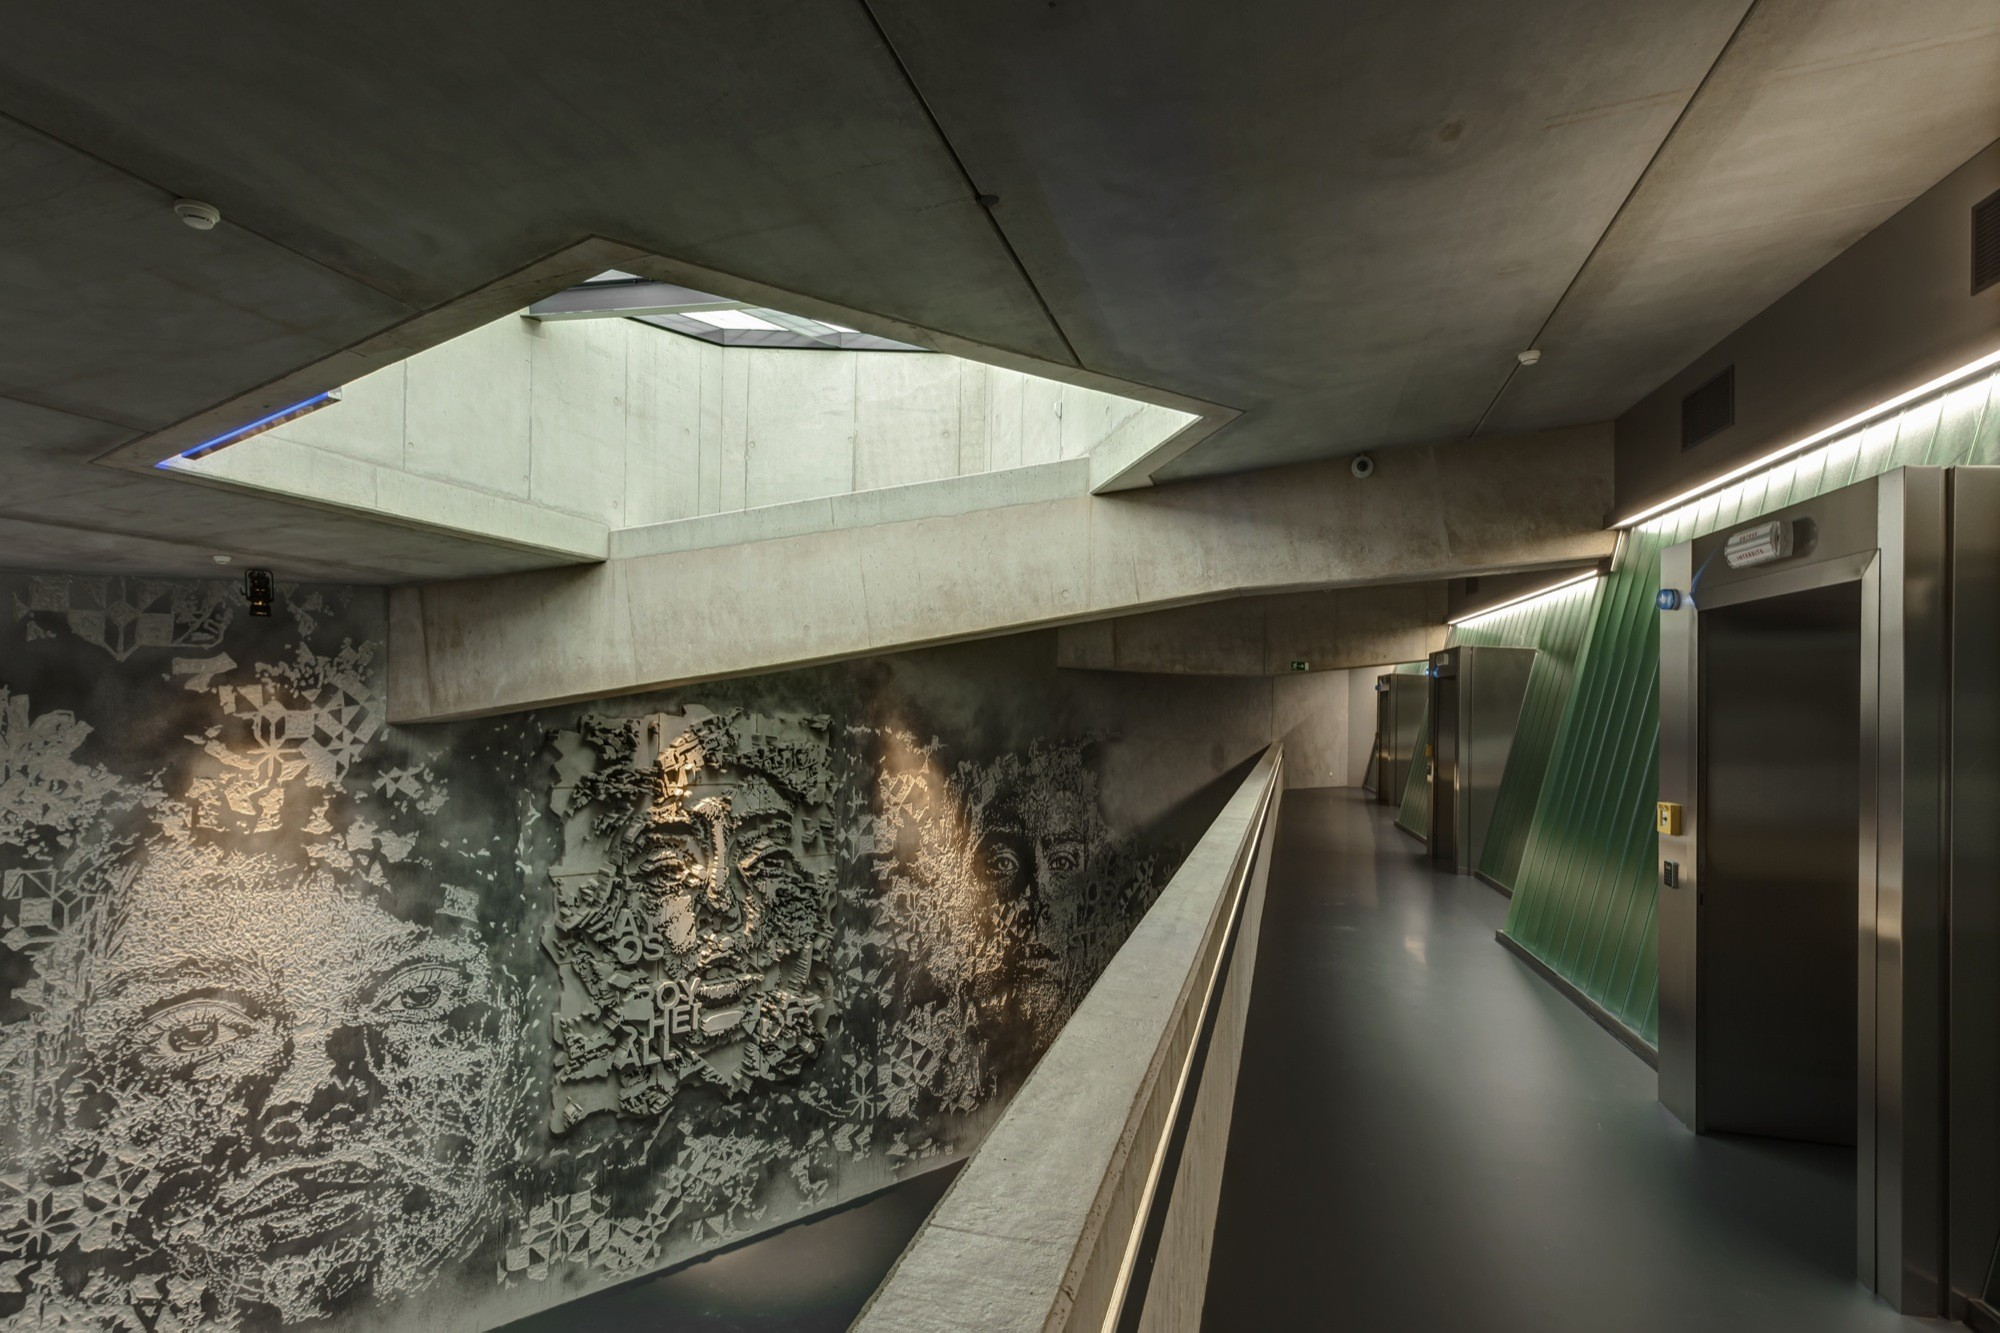 The Luxembourg Freeport / Atelier d'Architecture 3BM3, Courtesy of Atelier d'Architecture 3BM3